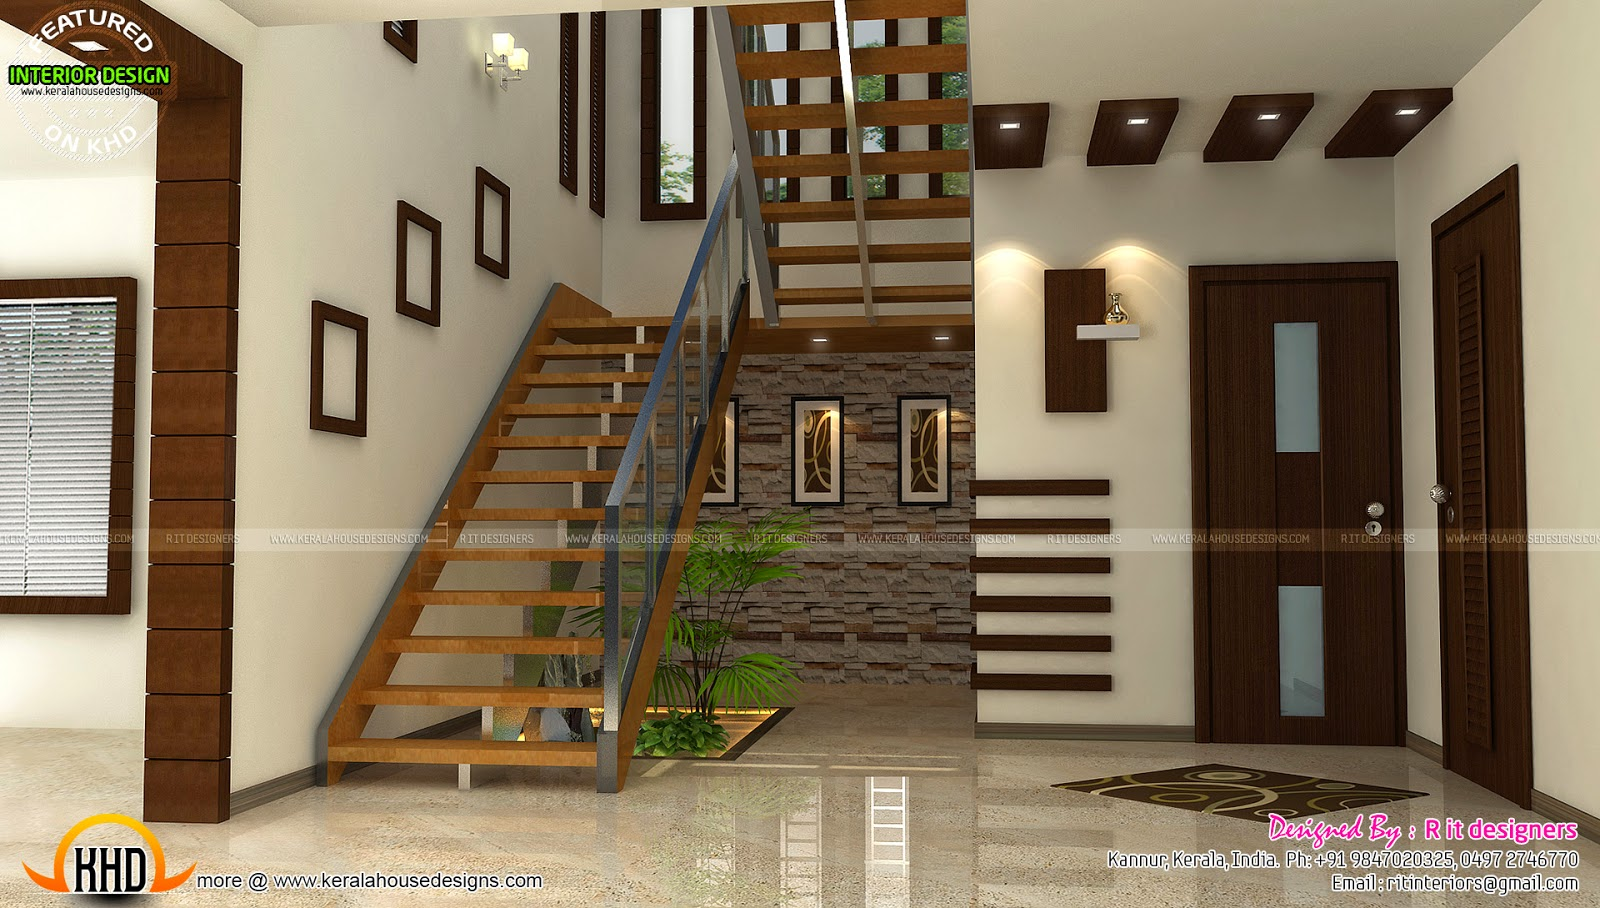 Staircase bedroom dining interiors kerala home design for Make home design